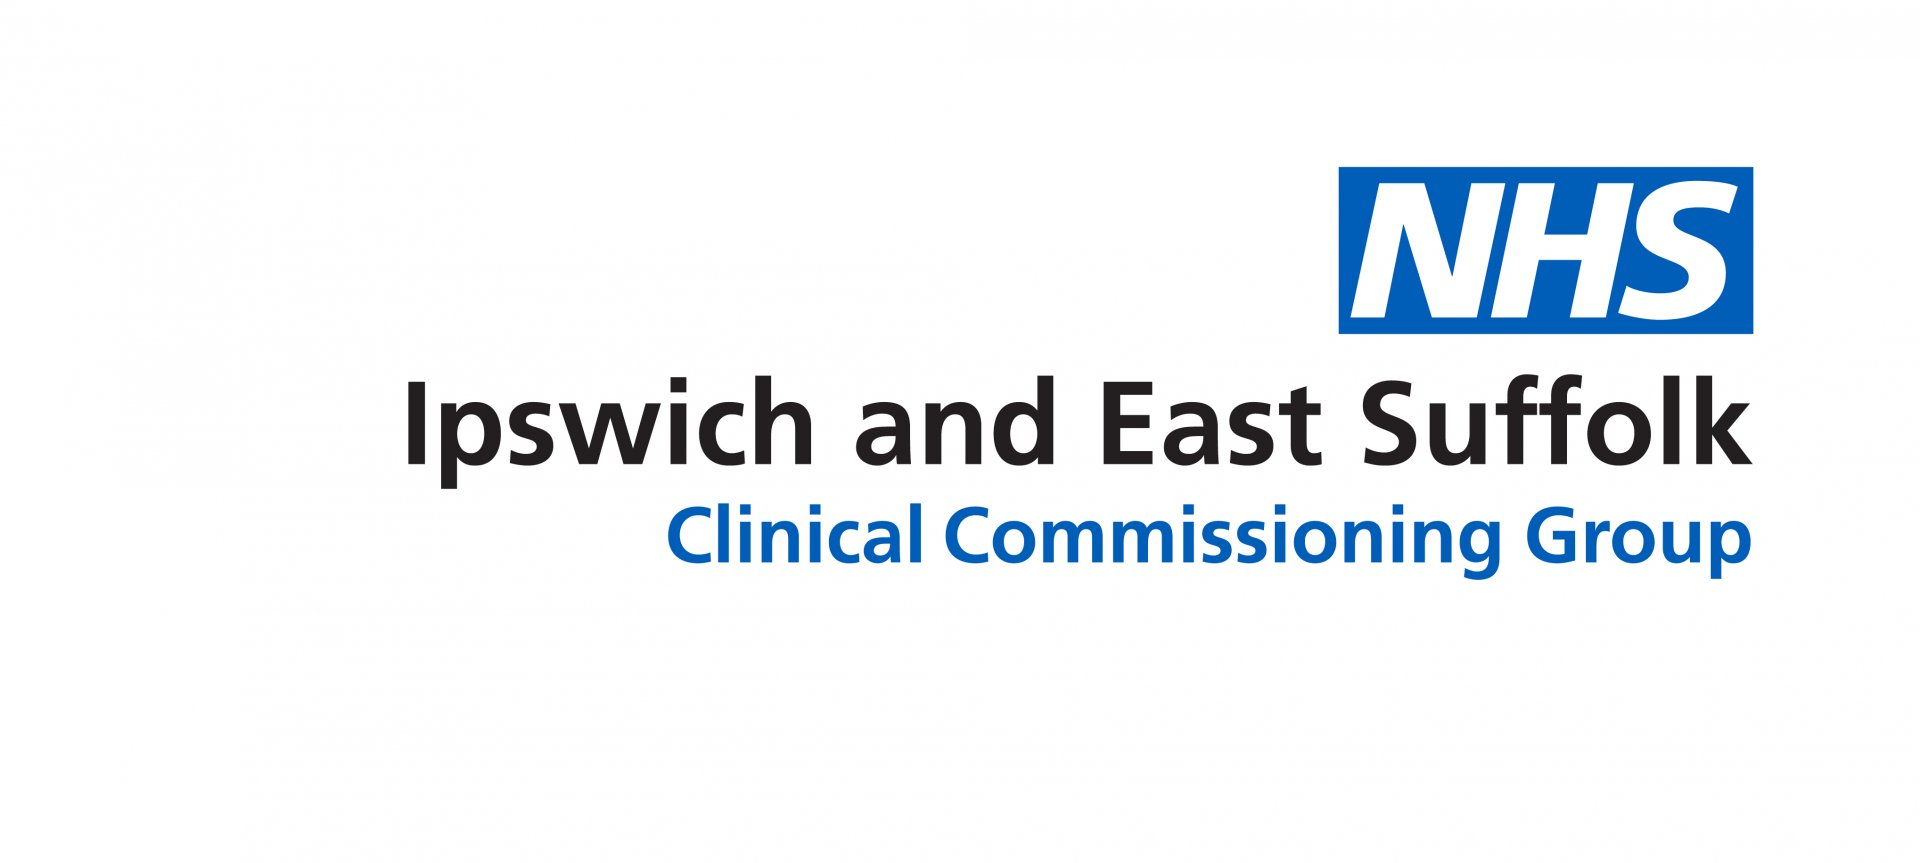 NHS Ipswich and East Suffolk CCG